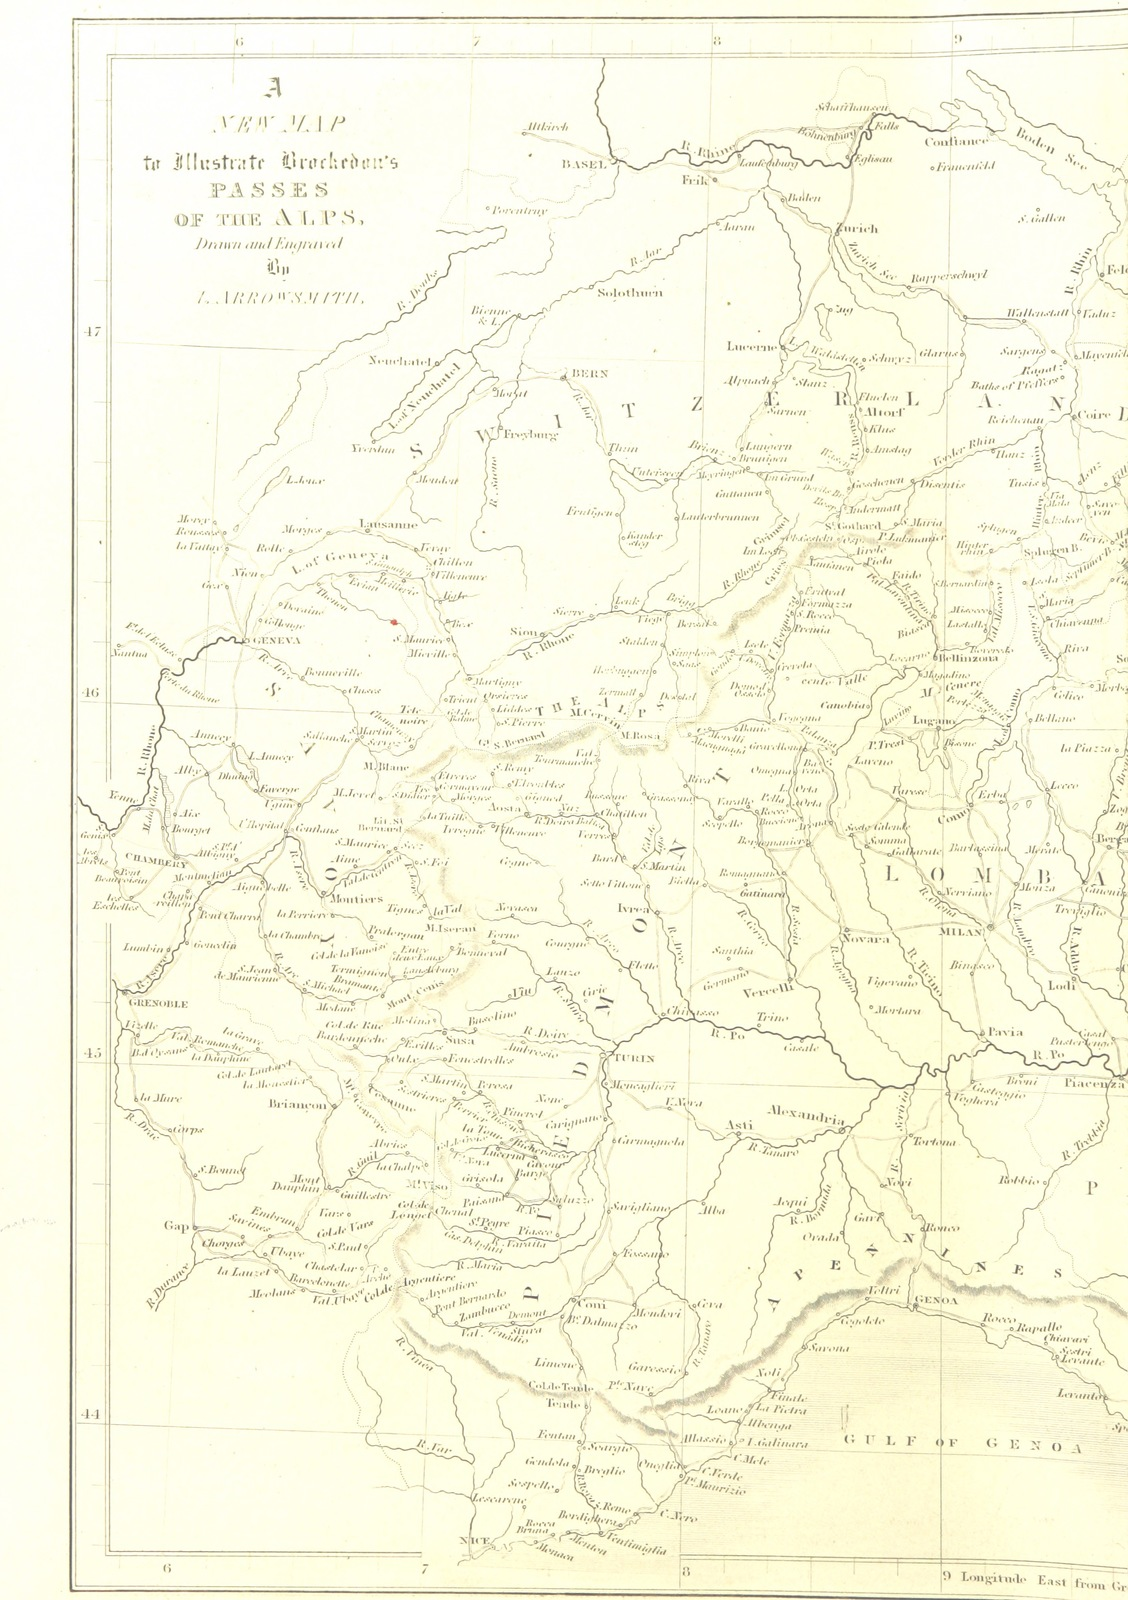 Map Of France Switzerland.Map From Illustrations Of The Passes Of The Alps By Which Italy